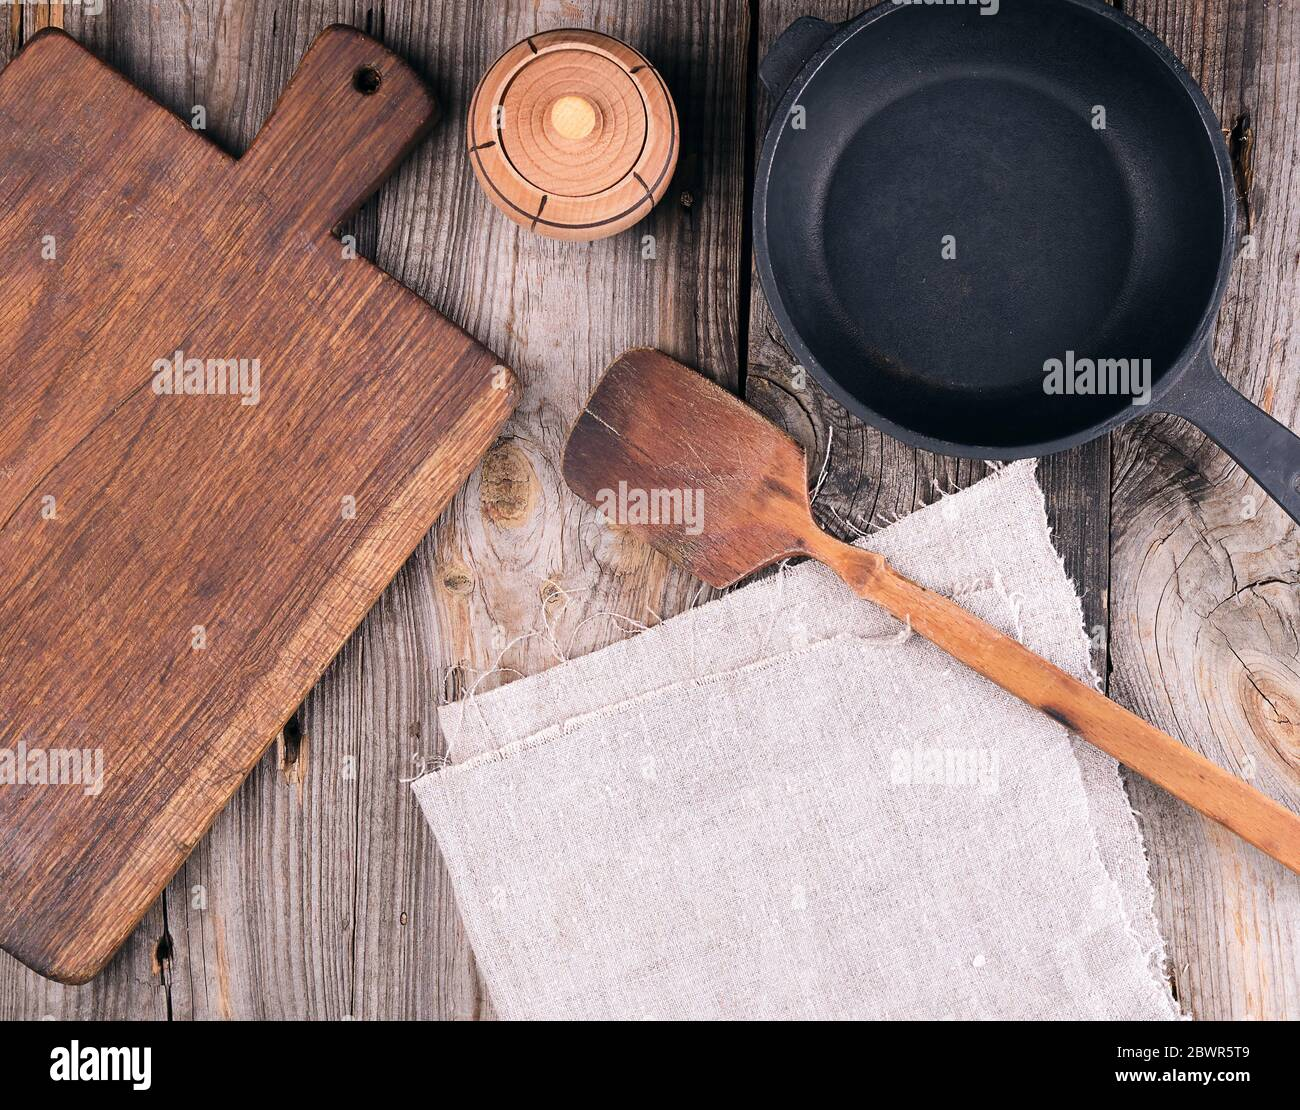 Empty Black Round Cast Iron Pan With Handle Wooden Cutting Board And Knife On A Gray Table Top View Stock Photo Alamy